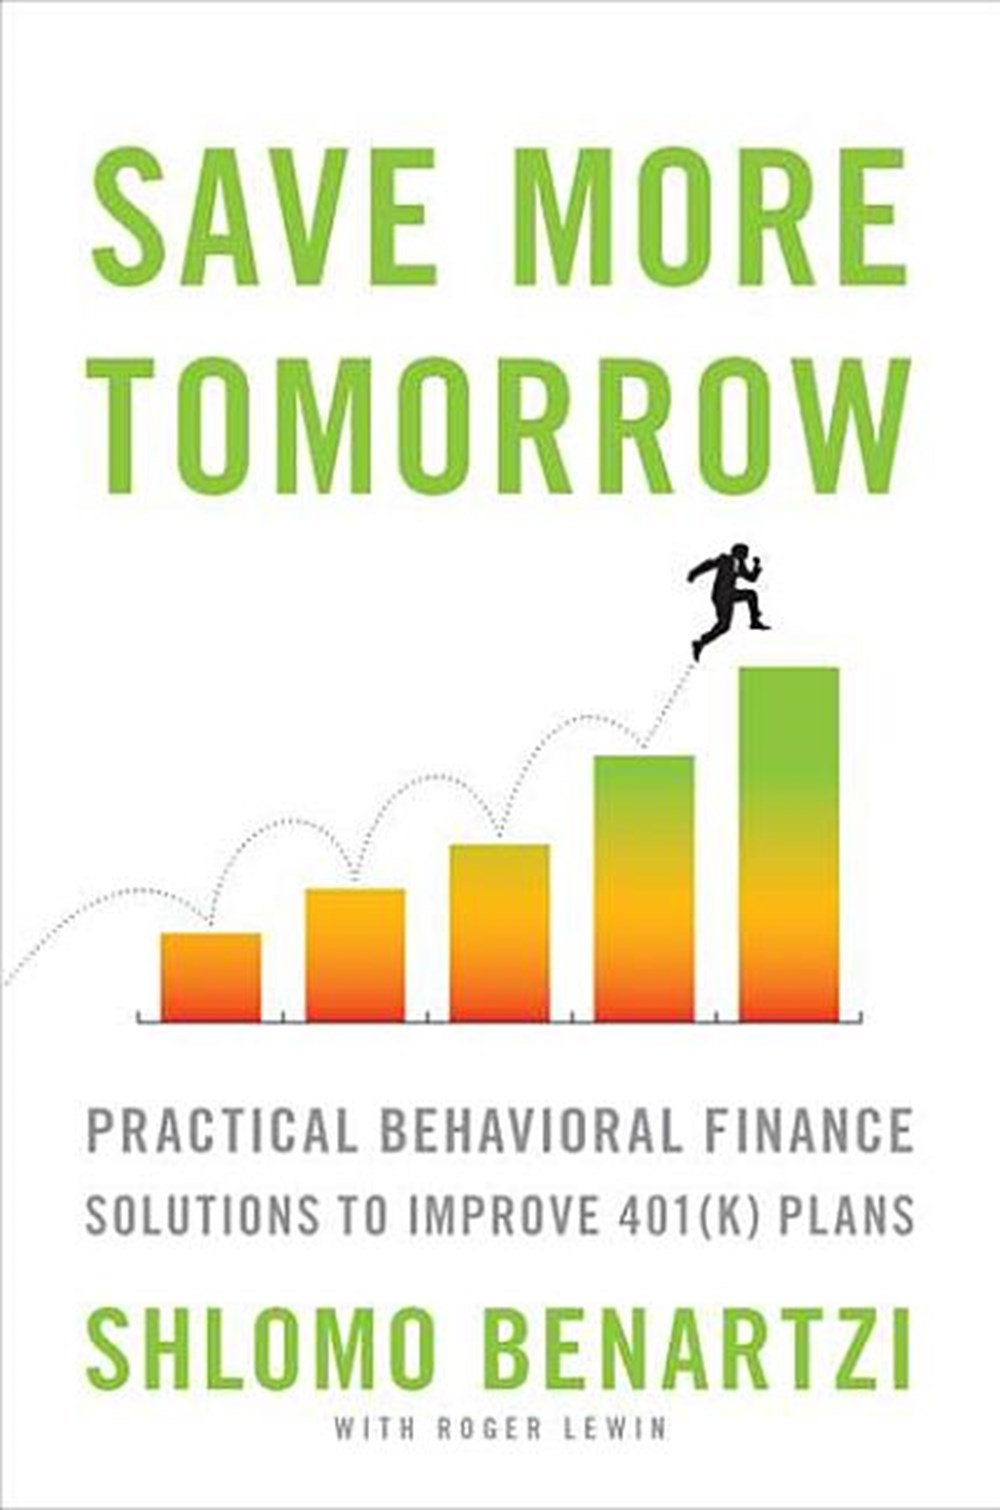 Save More Tomorrow Practical Behavioral Finance Solutions to Improve 401(k) Plans